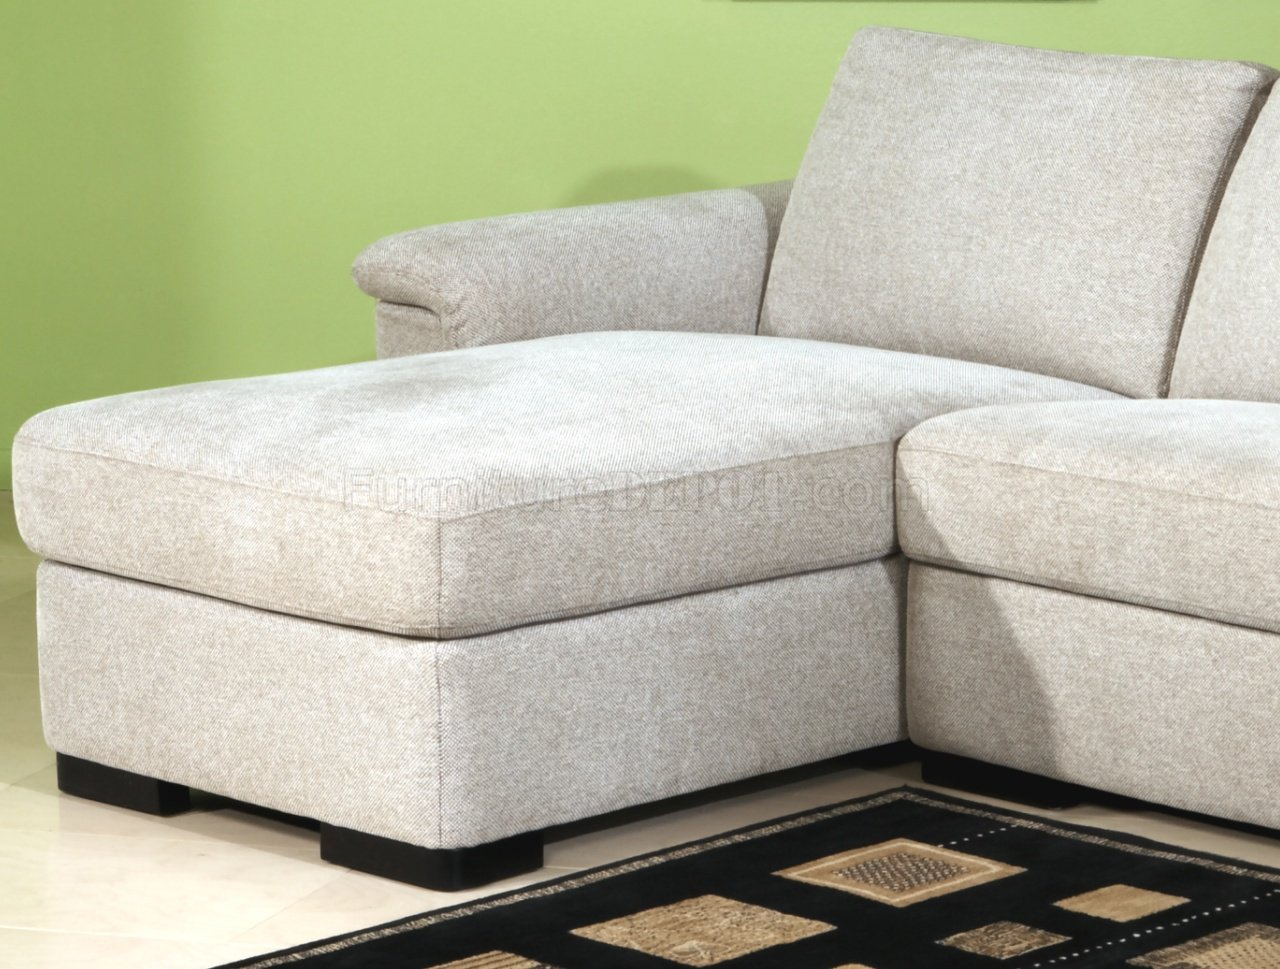 motion sofas cover for beige fabric modern sectional sofa w loveseat